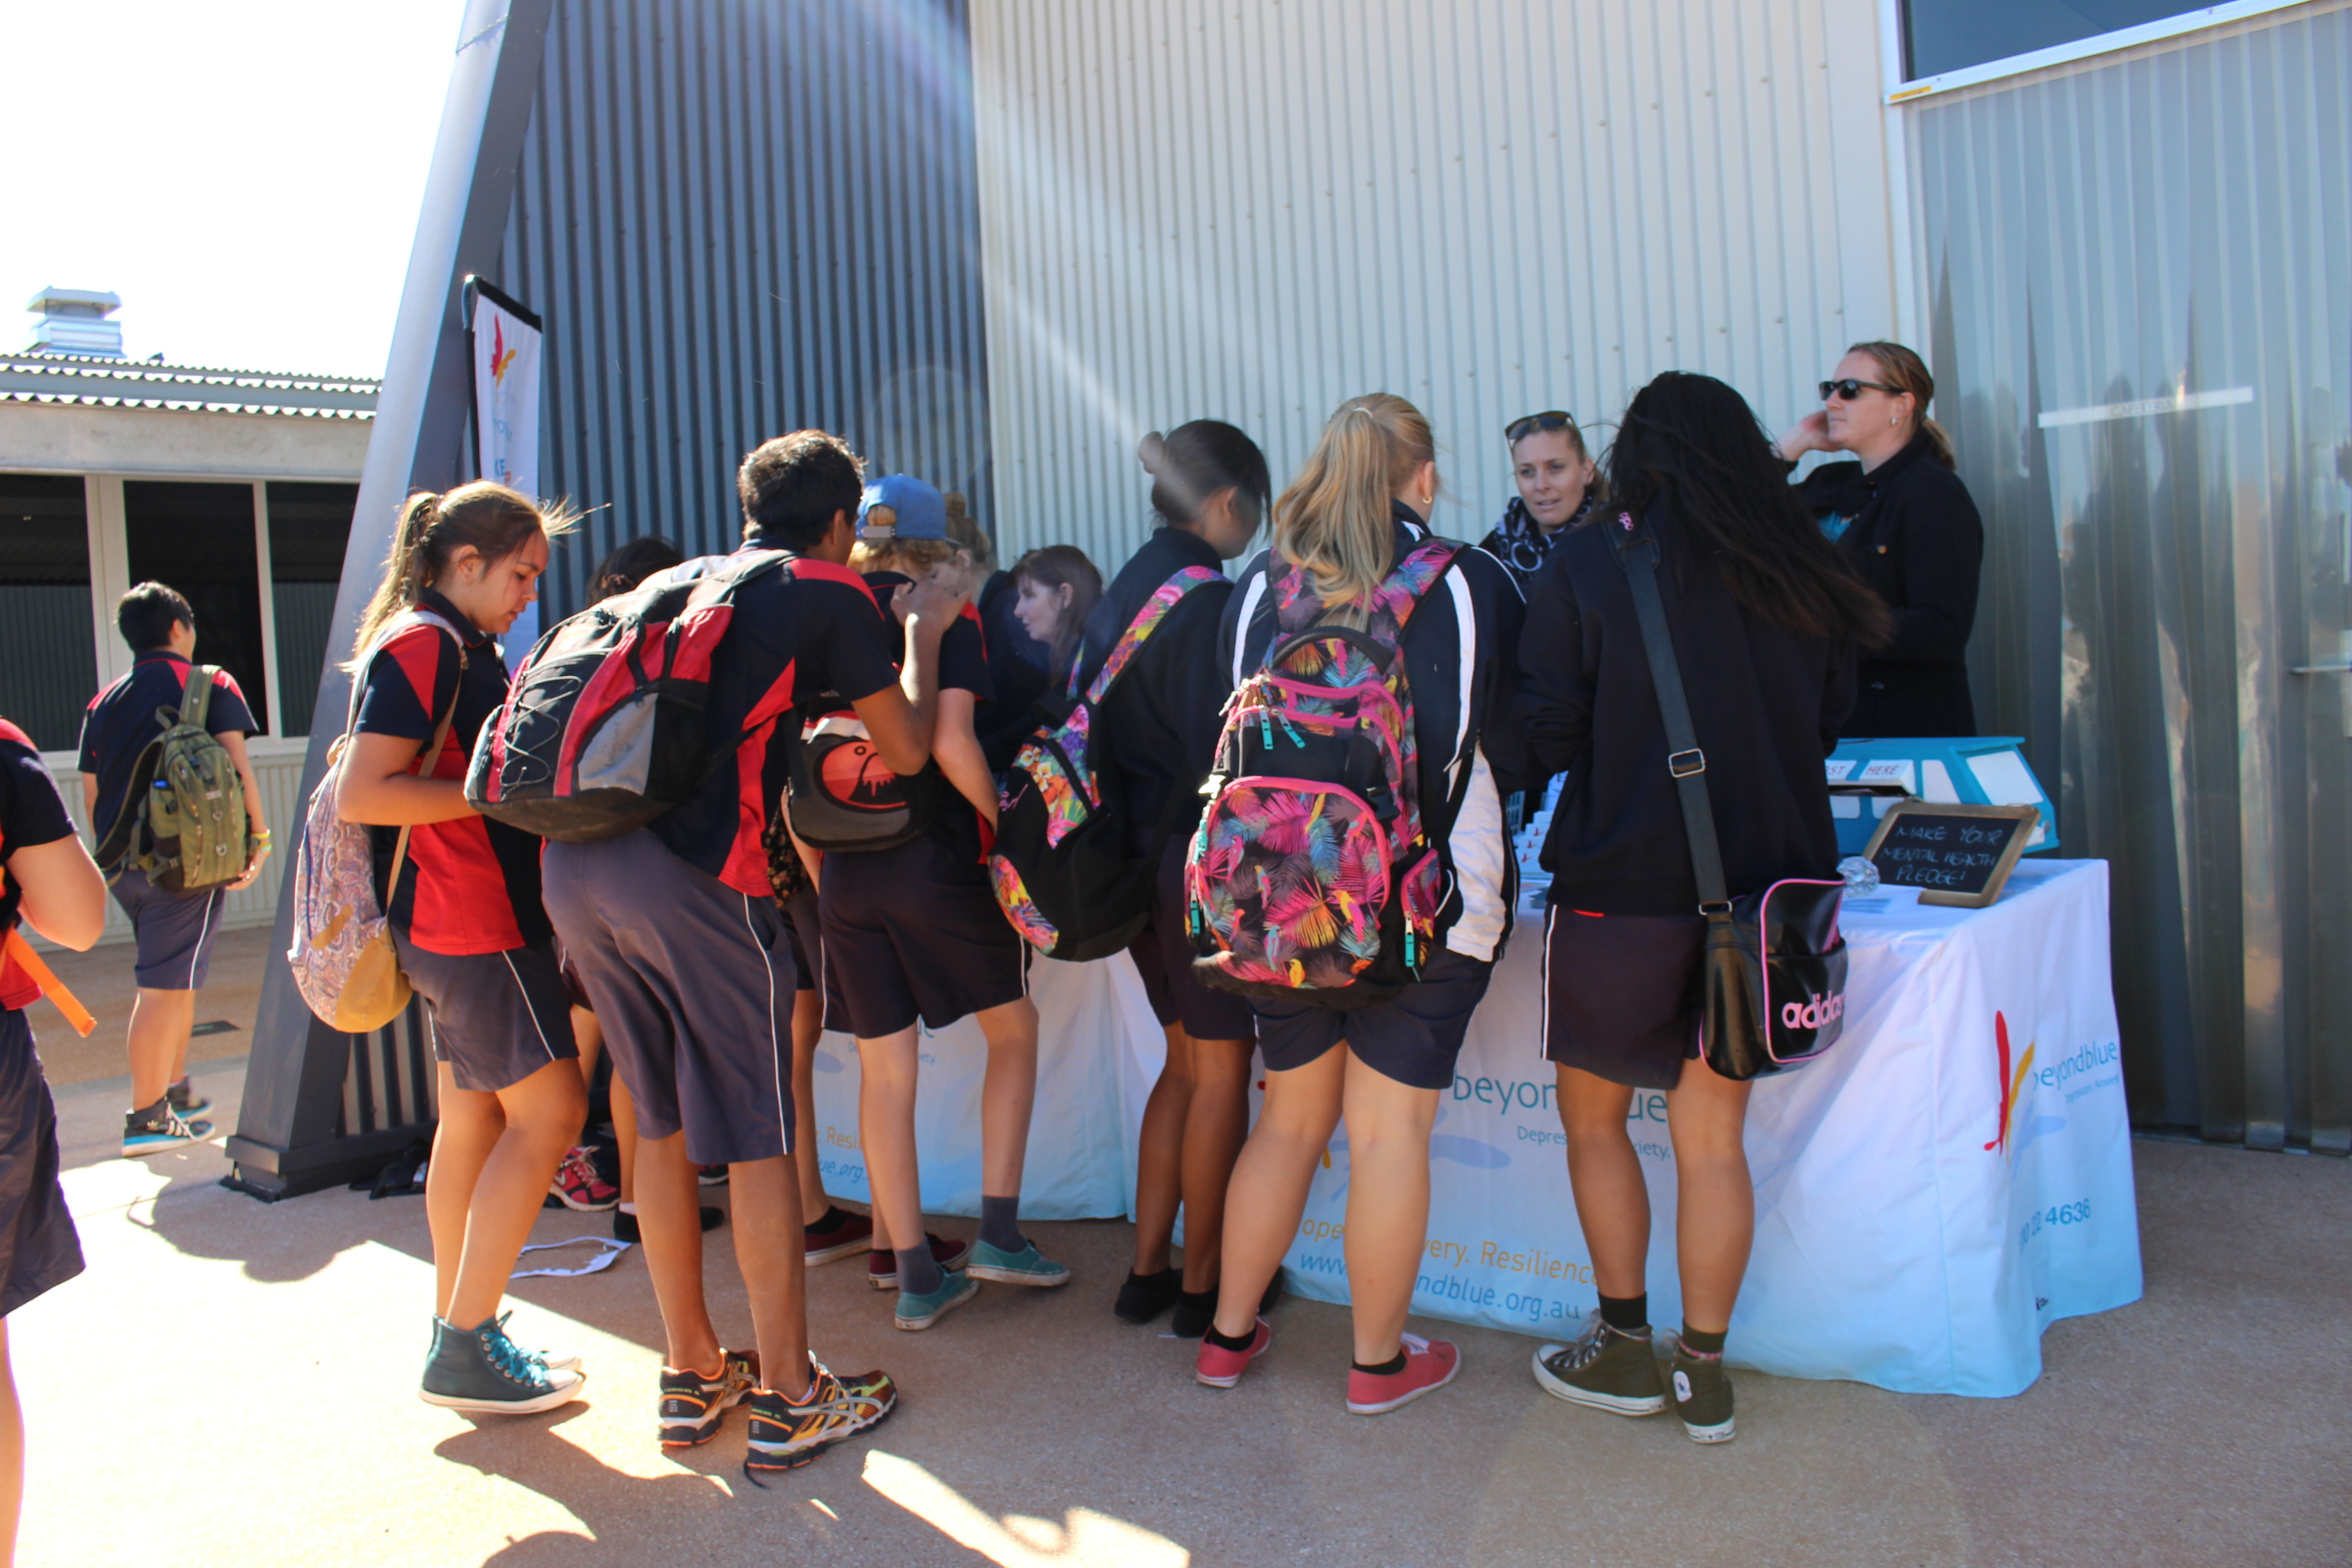 Students in Karratha pick up free Beyond Blue info.